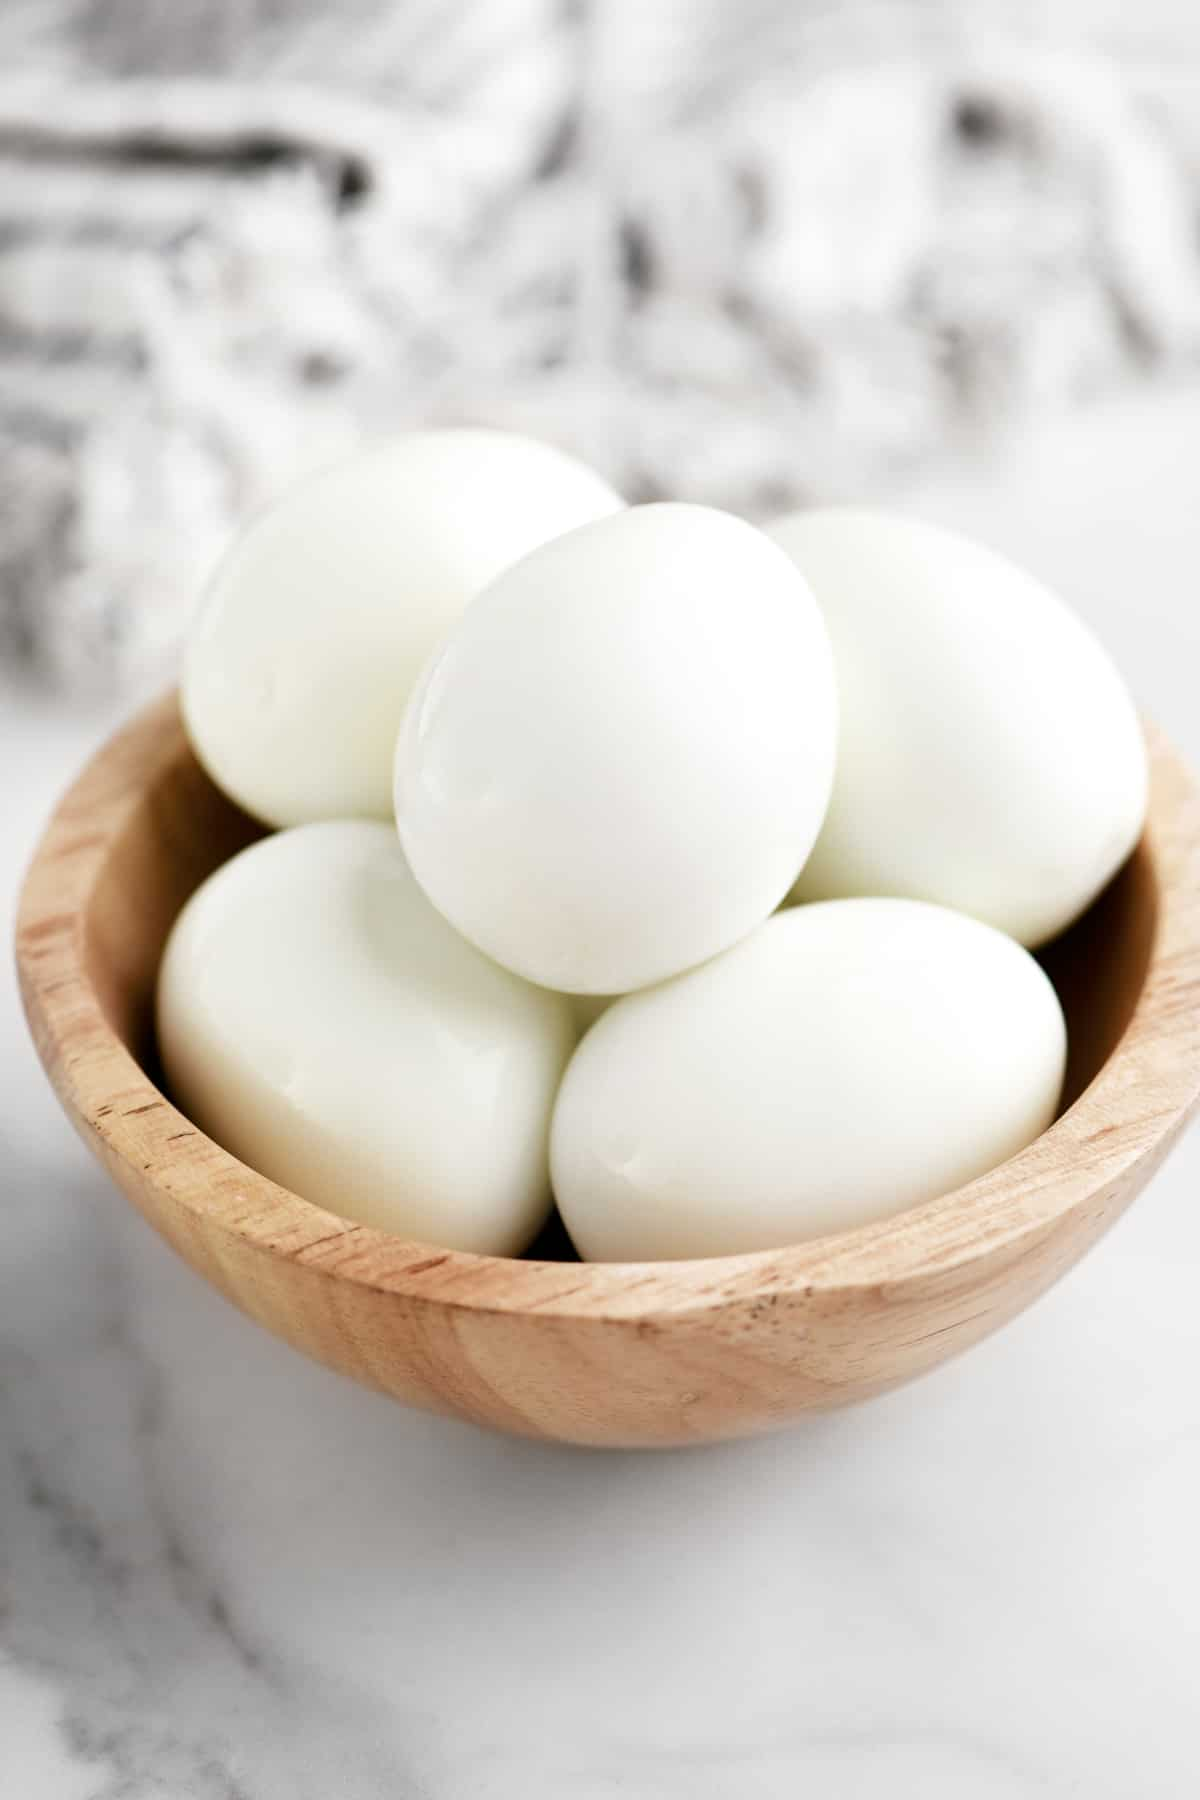 hard cooked eggs in a wooden bowl